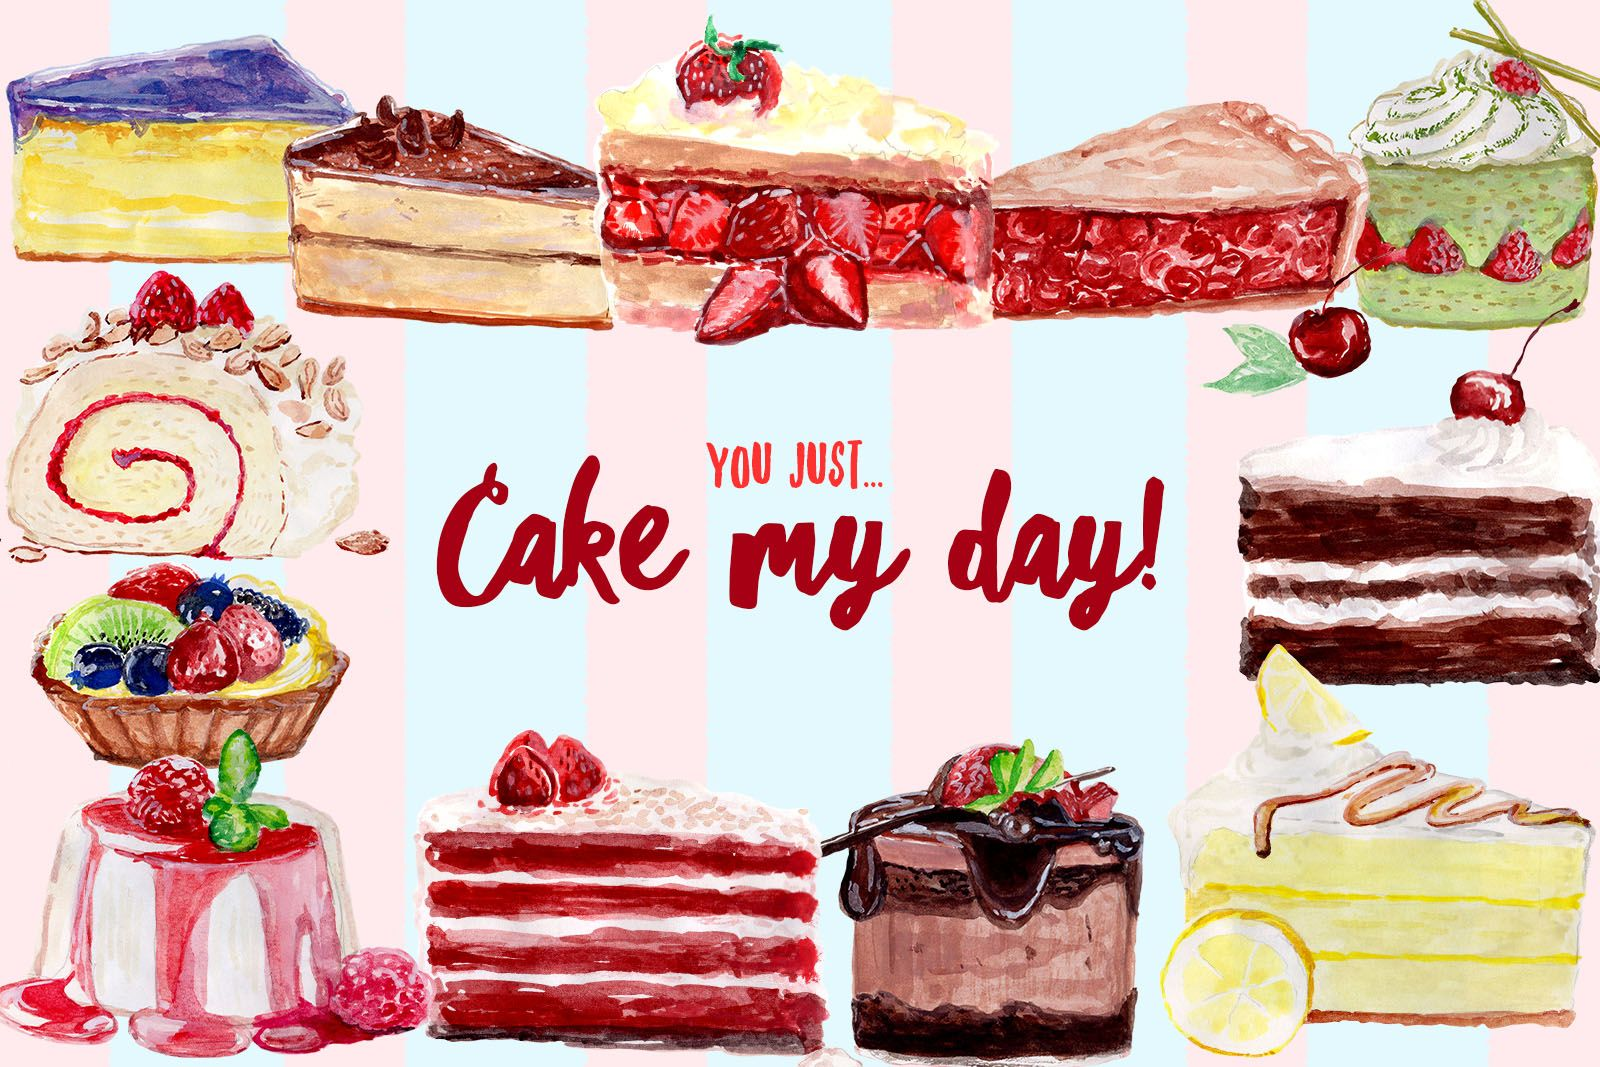 free watercolor cake cliparts volumes cifsdata2 mom design freebies free design resources fdr cake my day free watercolor clipart [ 1600 x 1067 Pixel ]